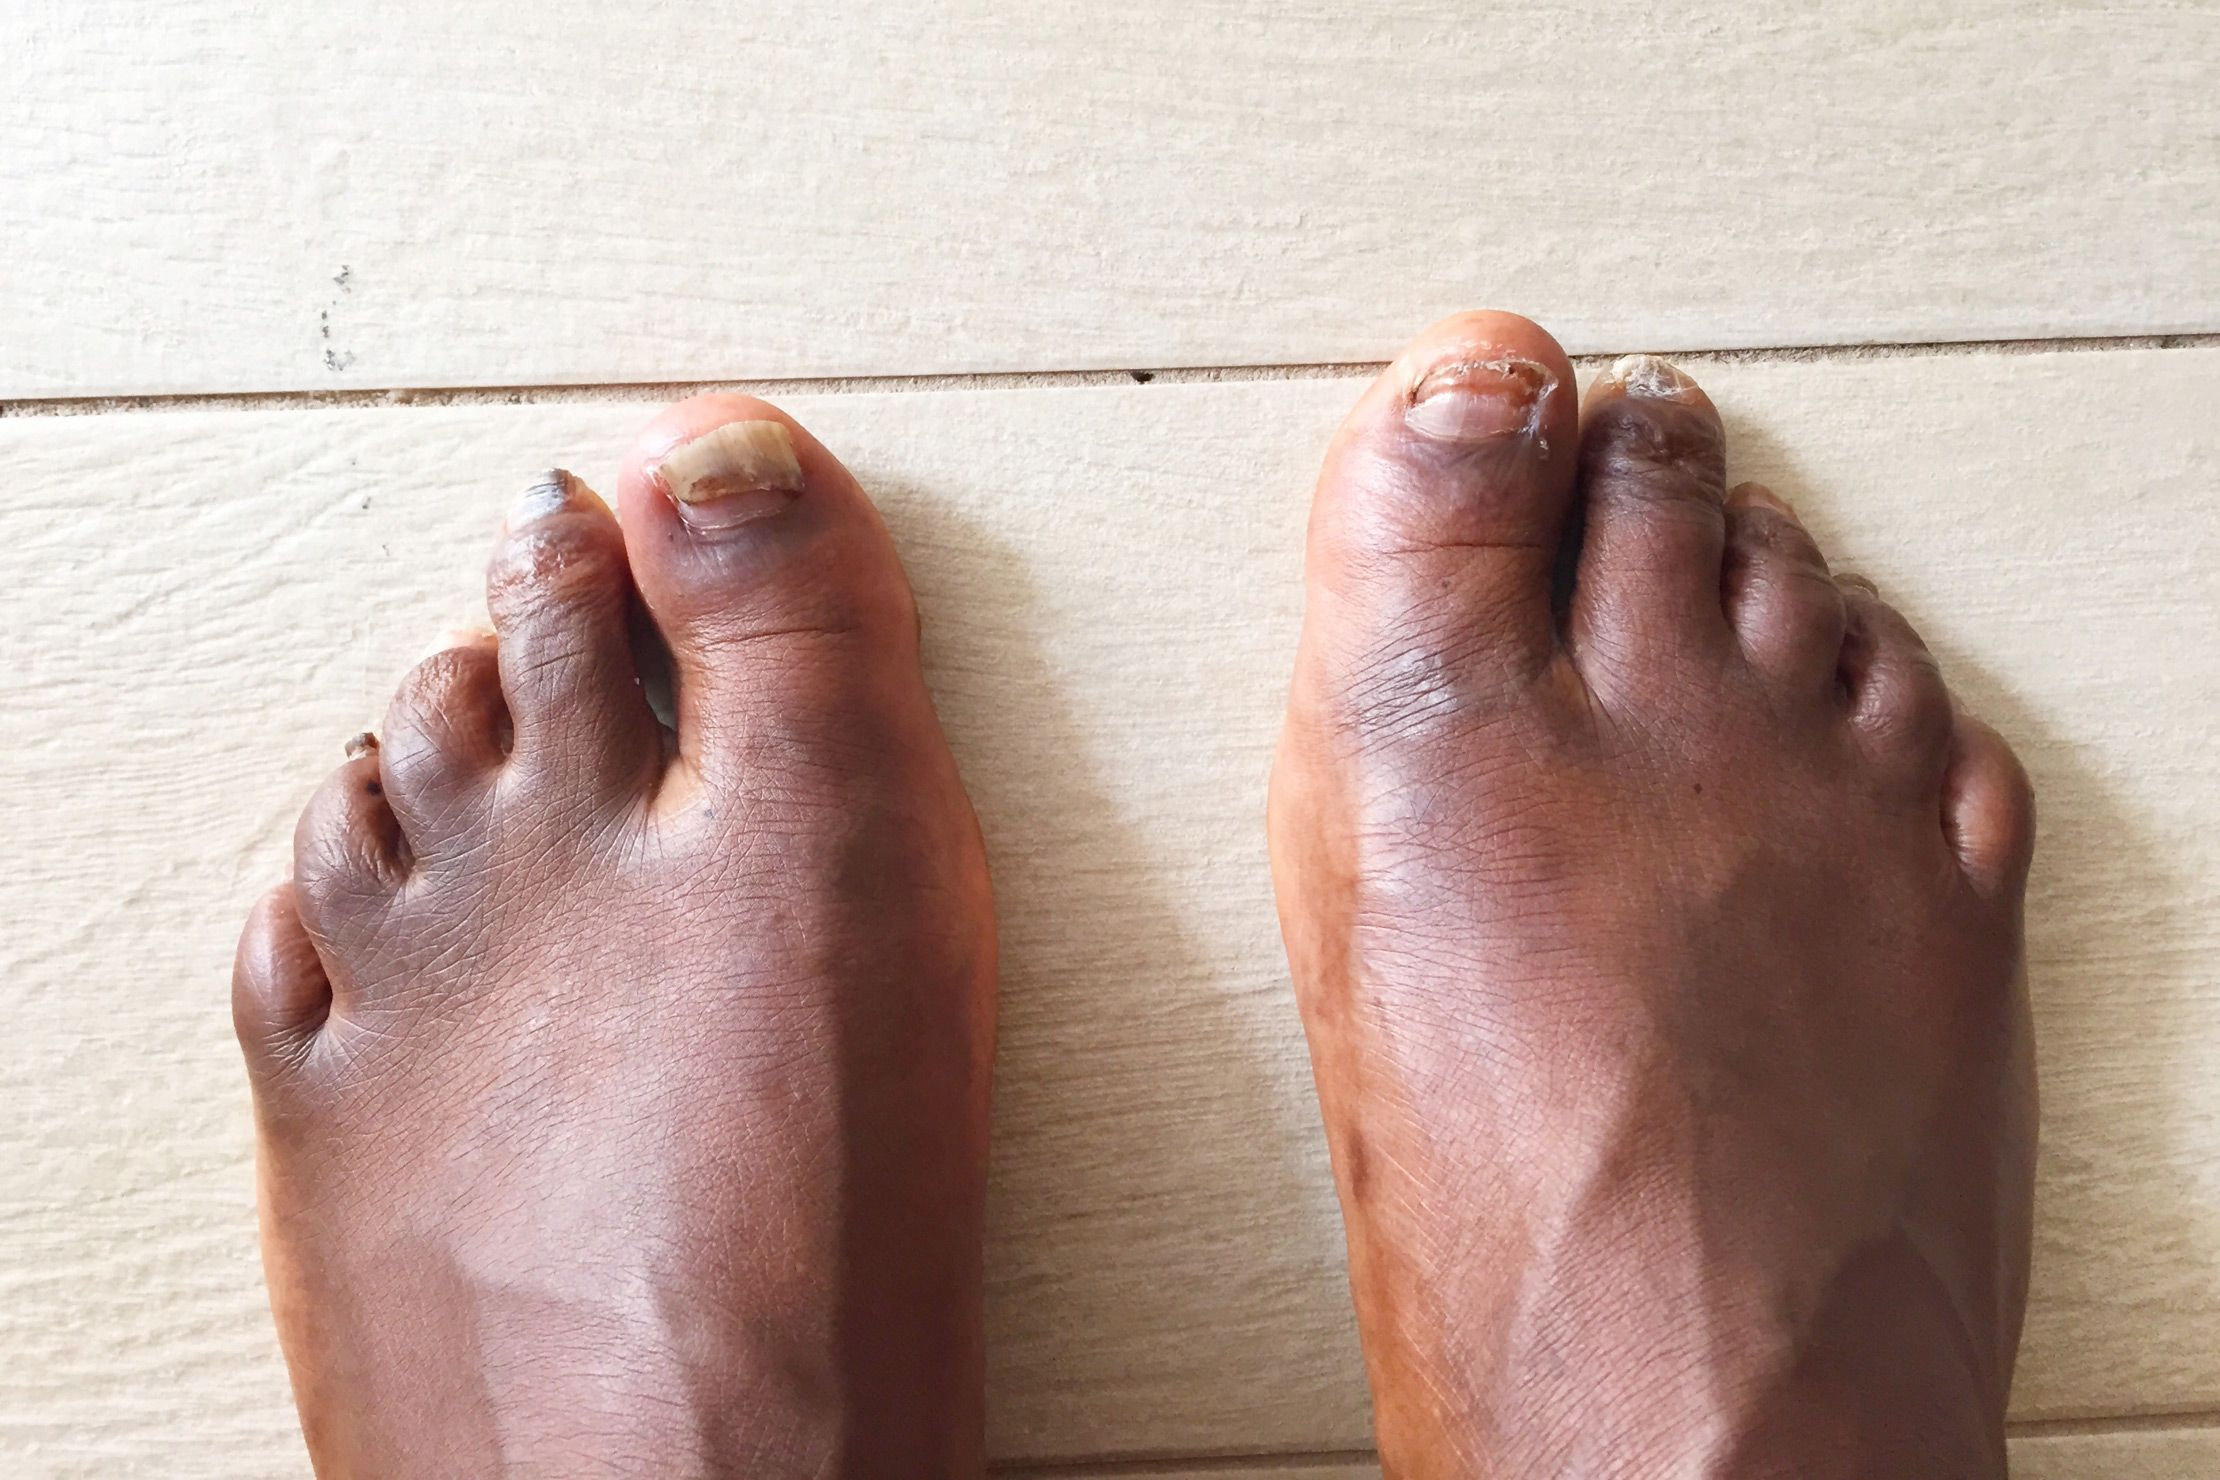 Feet have why ugly guys do How to